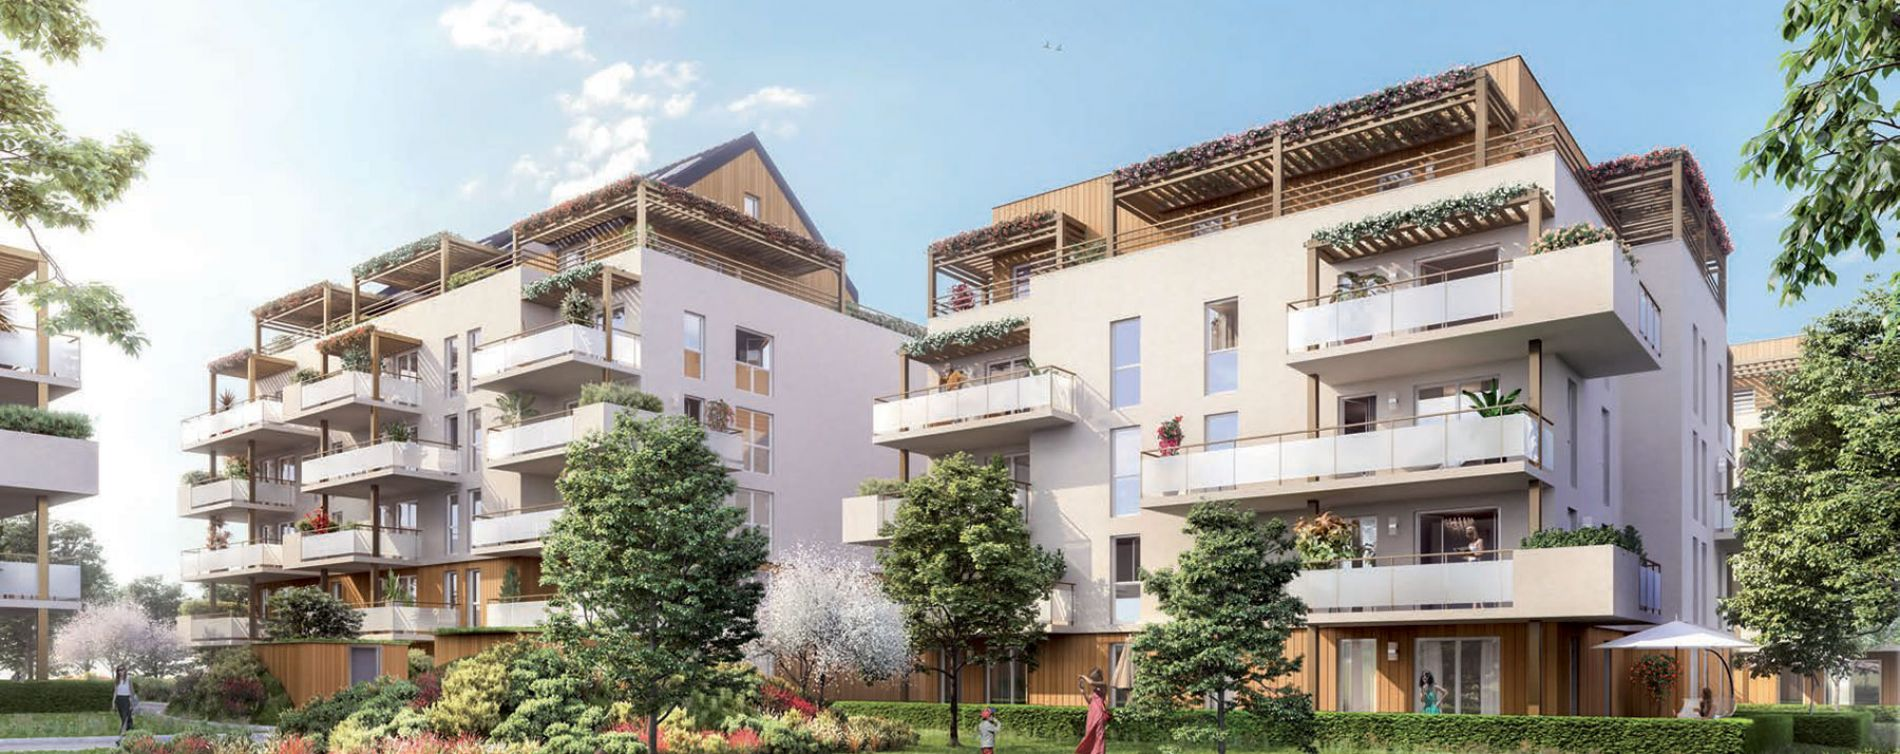 Rumilly : programme immobilier neuve « Green Valley »